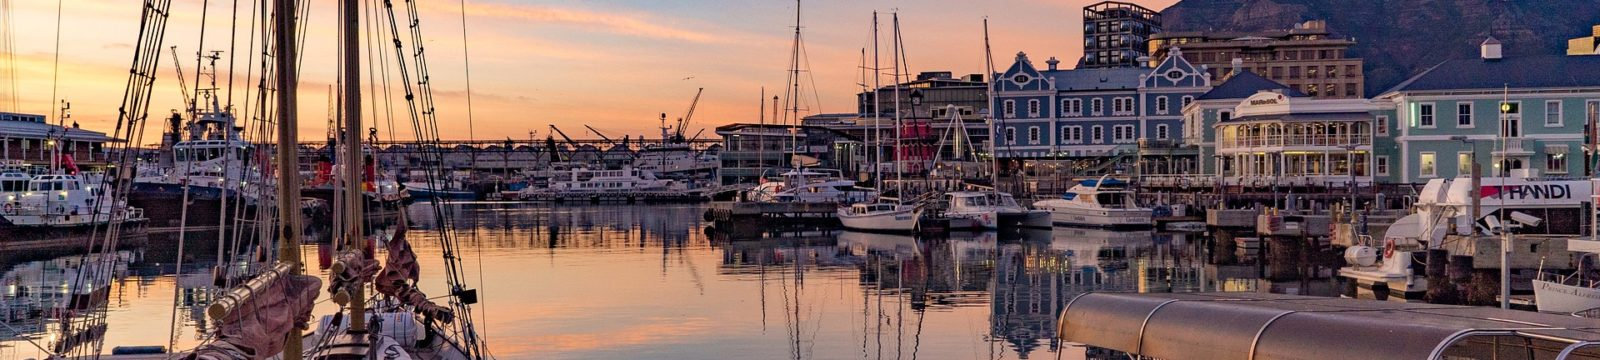 Photo of Cape Town harbour at dusk